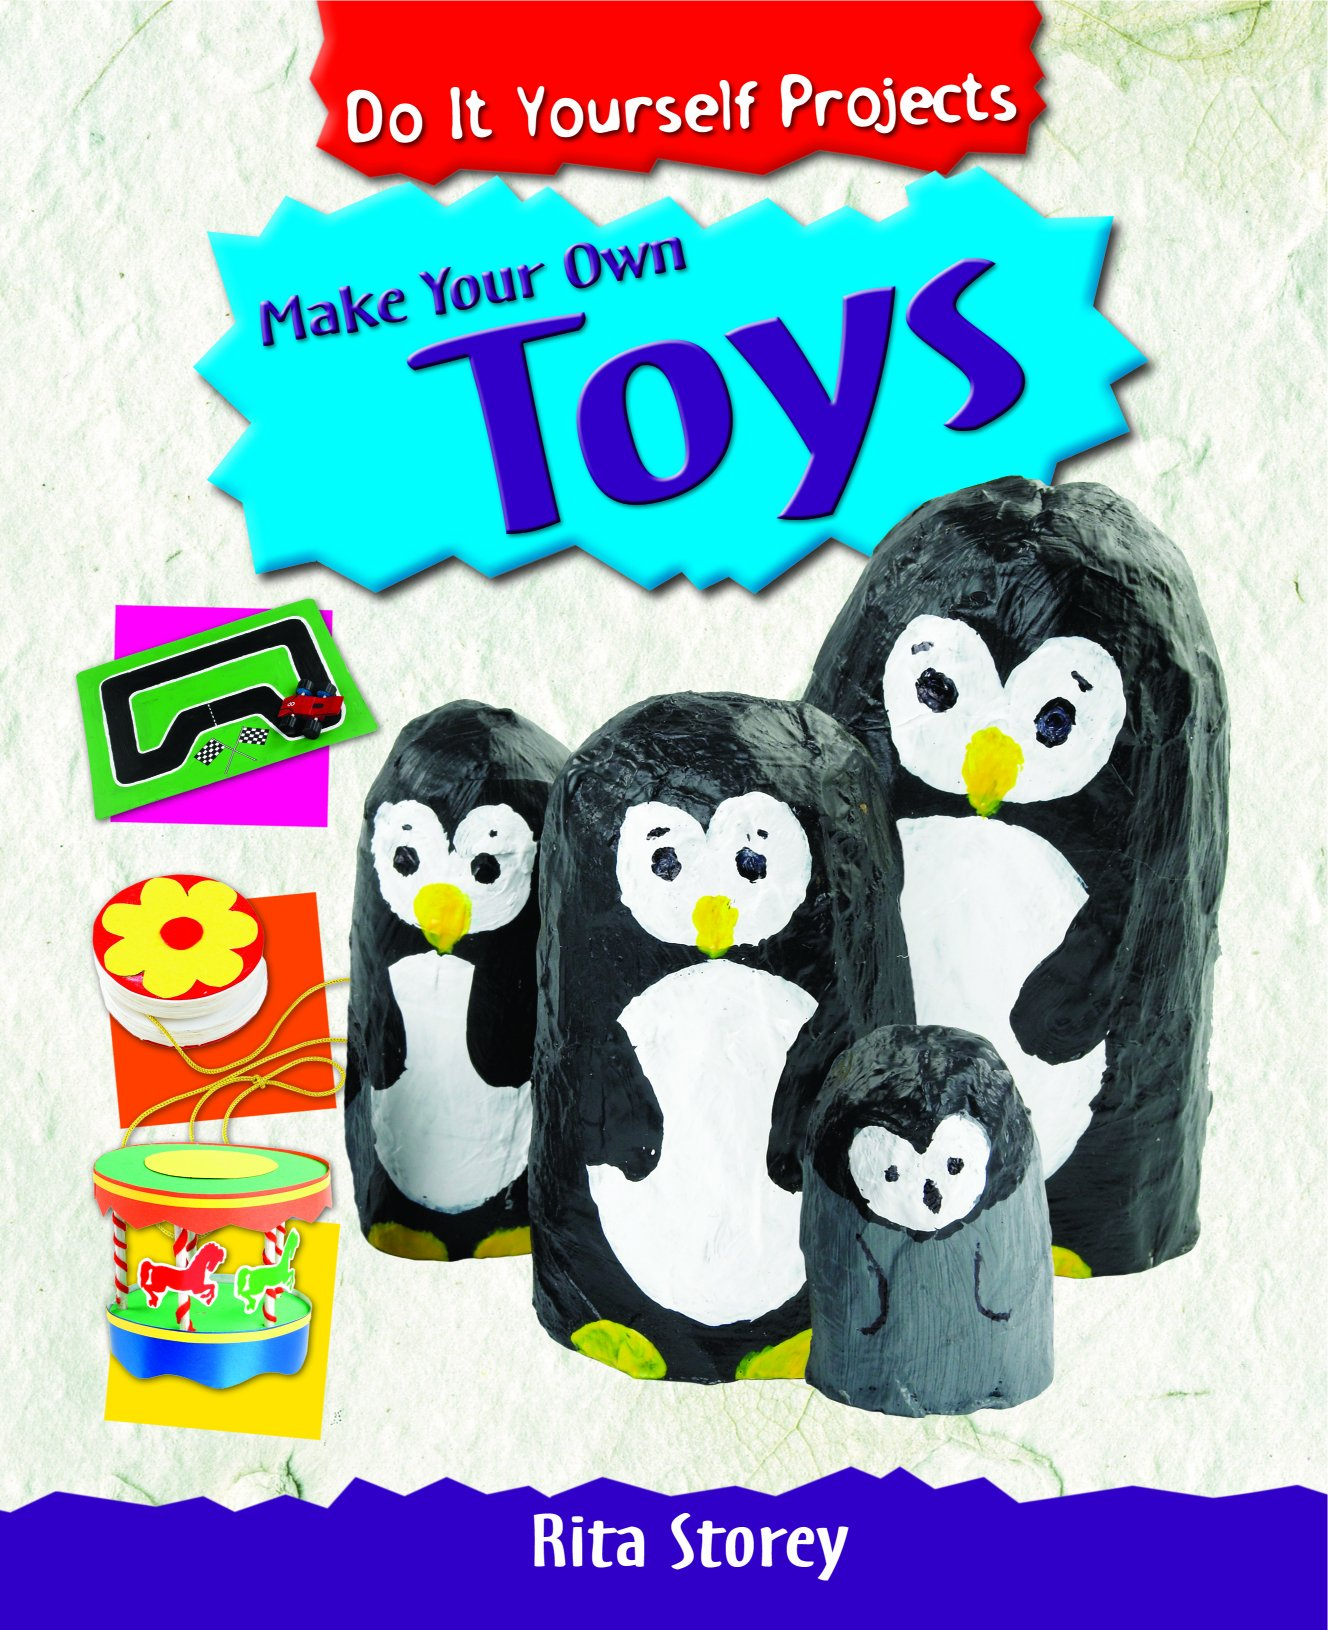 make your own toys do it yourself projects pdf read by books related with make your own toys do it yourself projects by rita storey solutioingenieria Choice Image